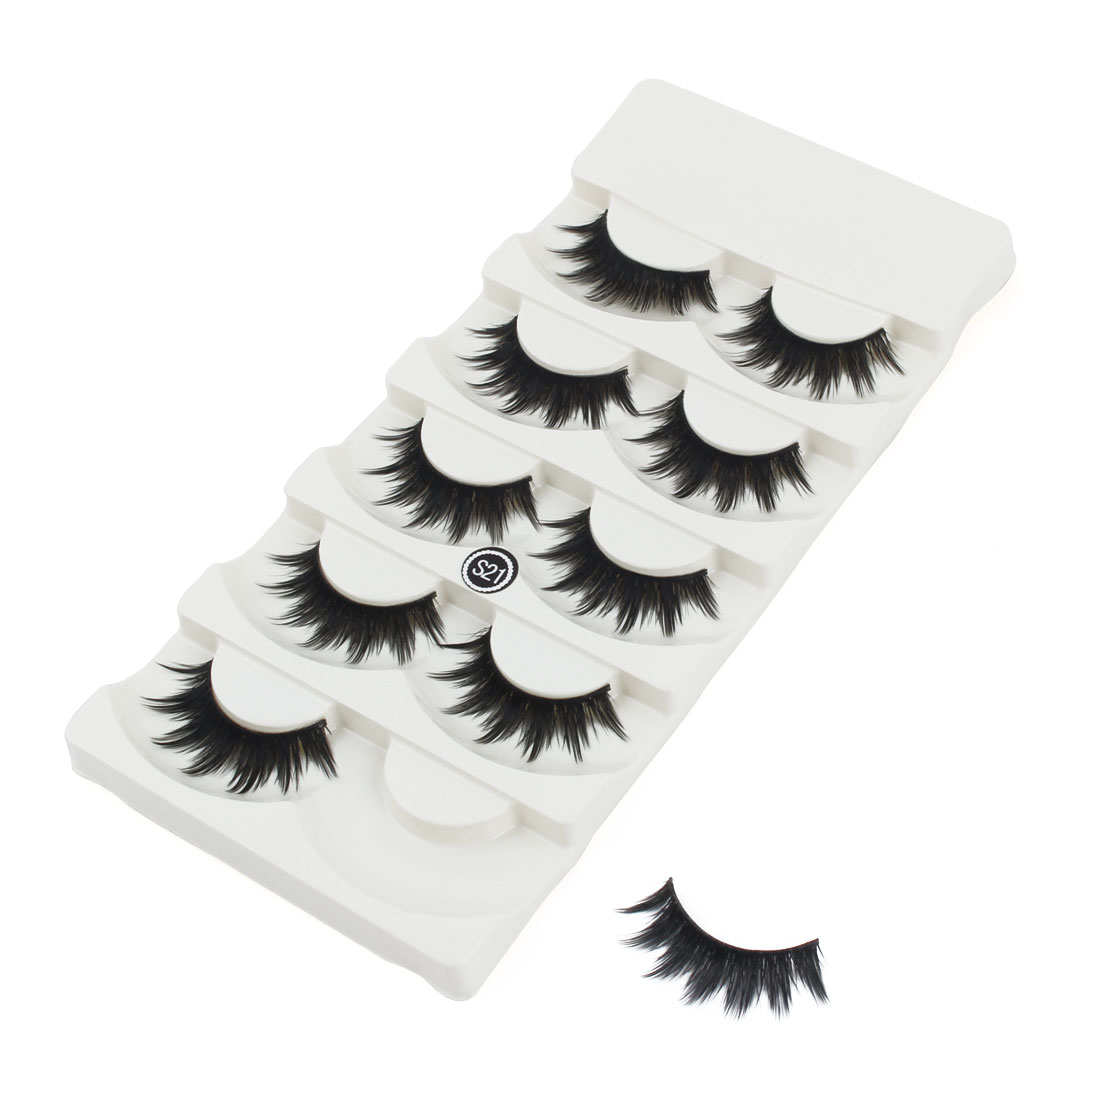 Unique Bargains5 Pairs Women Synthetic Fibers False Eyelashes Handmade Long Eye Lashes Makeup